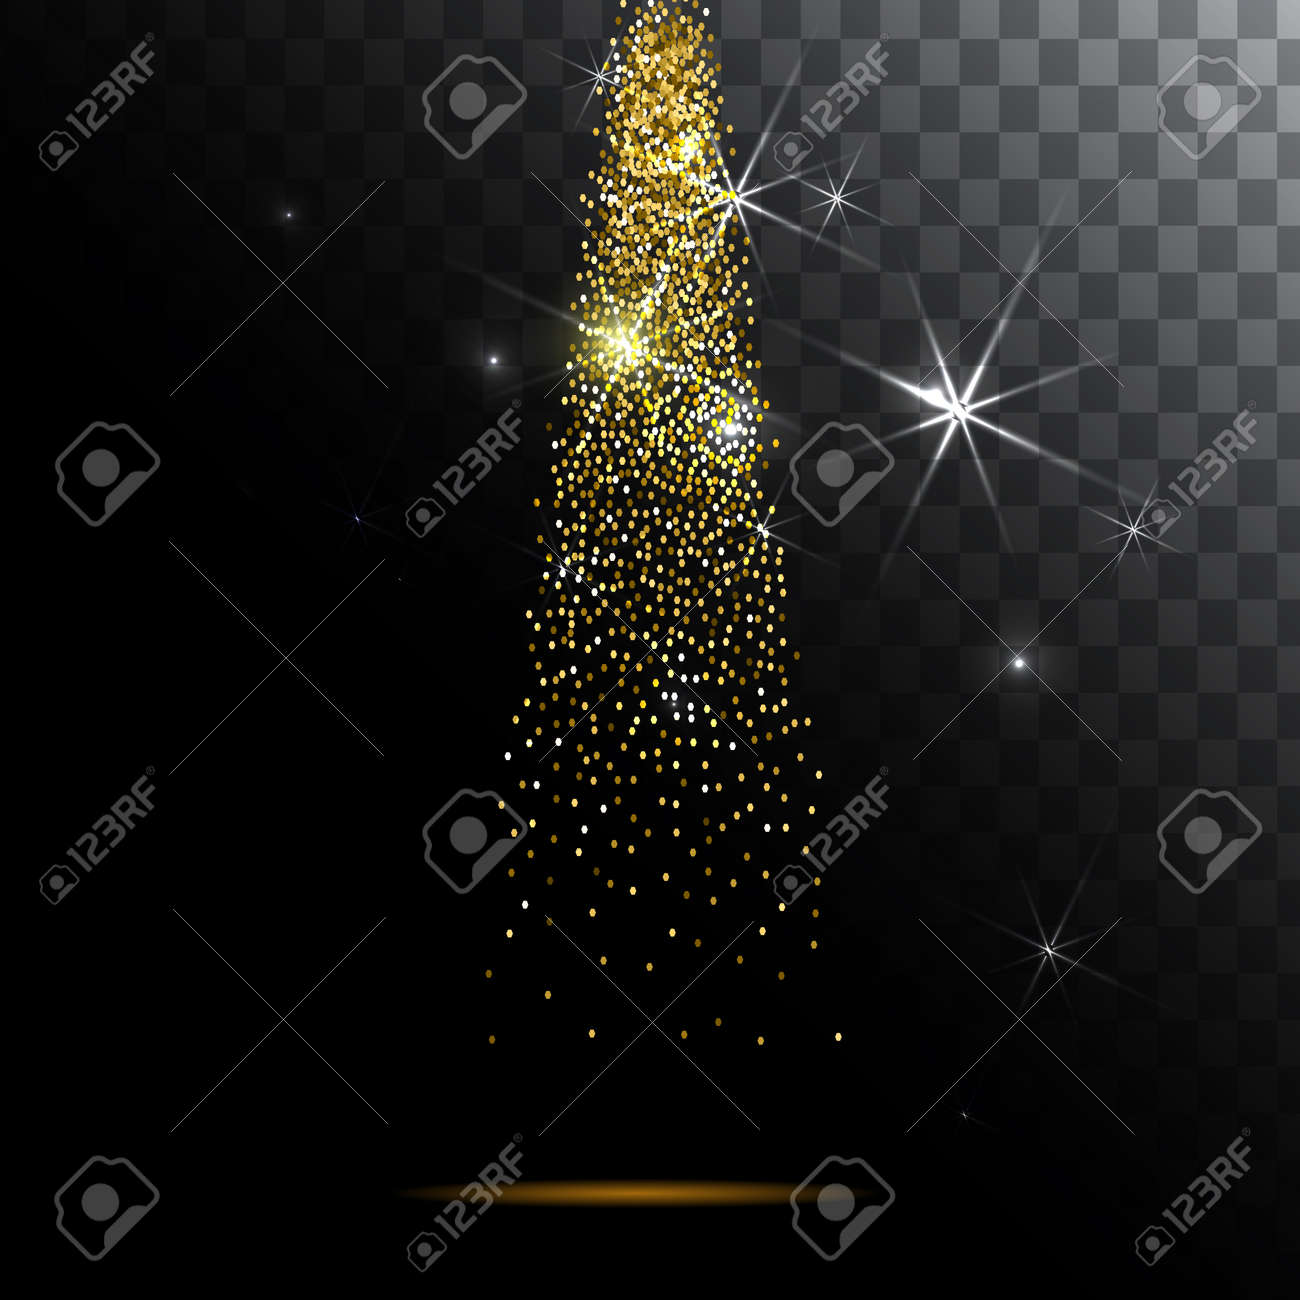 Abstract light background. Magic light with gold glitter burst. - 59113303